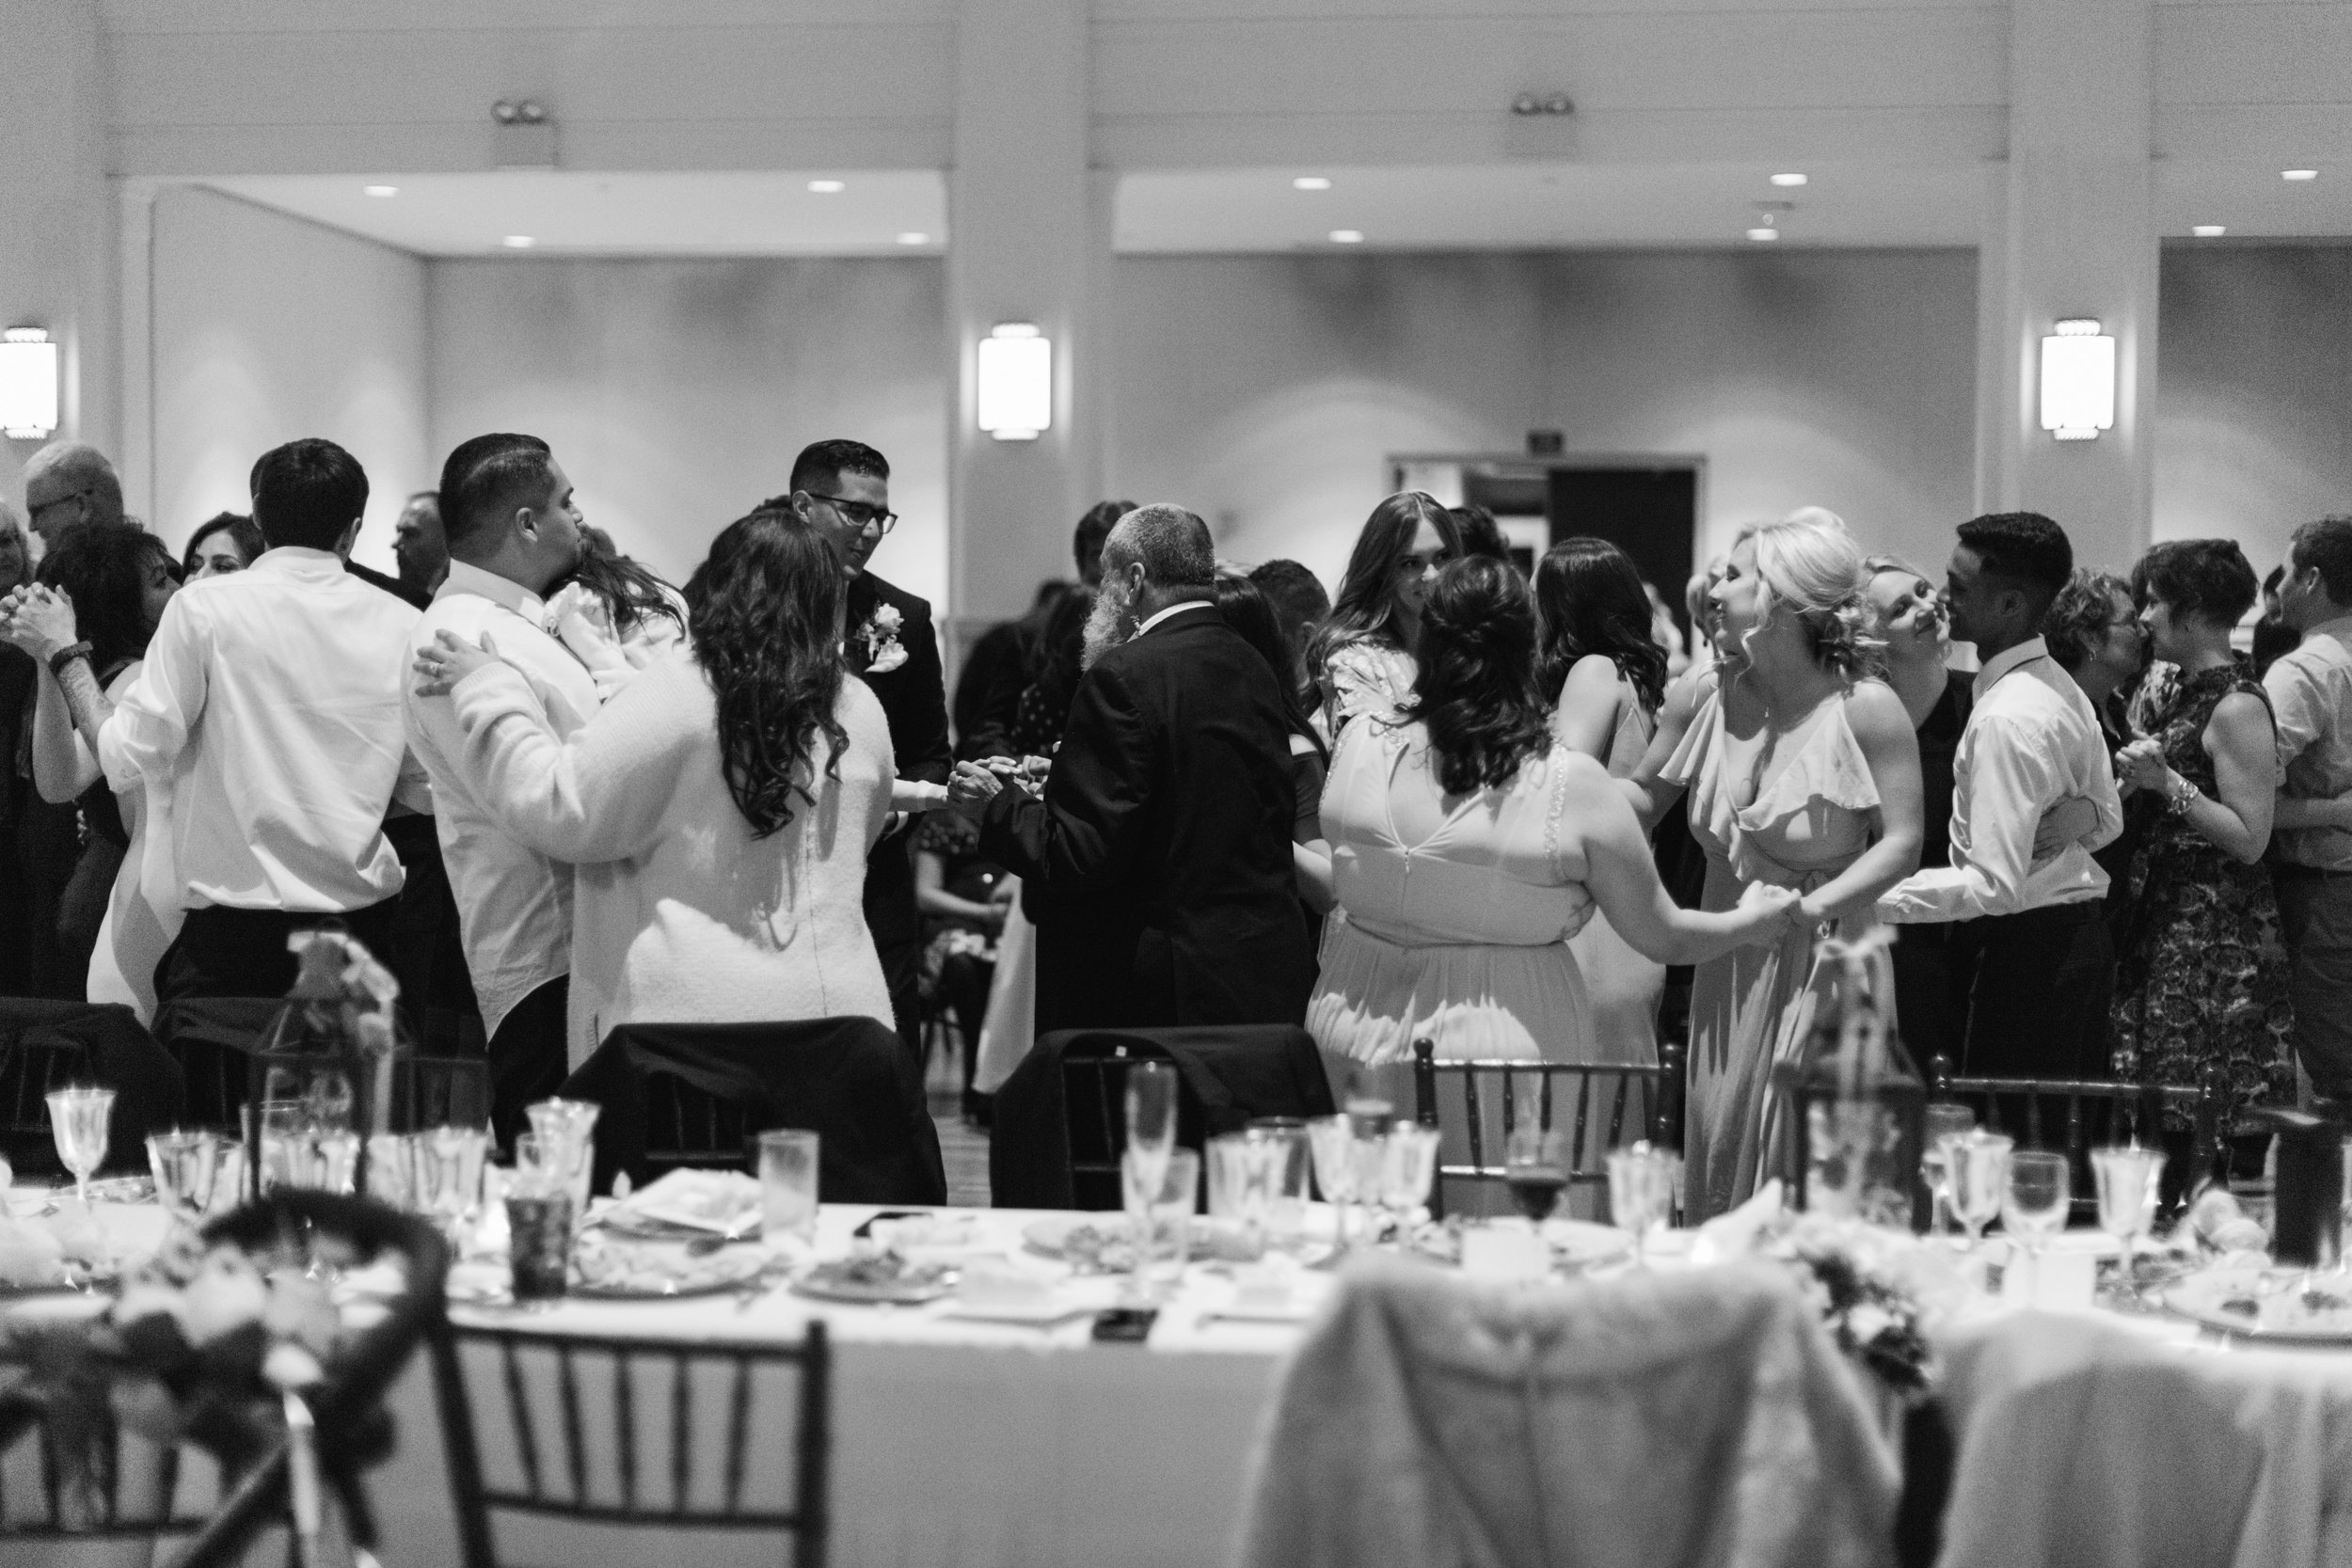 Dancing at The Wedding | B&W Wedding Photos | Southern California Romantic Wedding Near Their Home | Unions With Celia | Amy & Darren Photography |